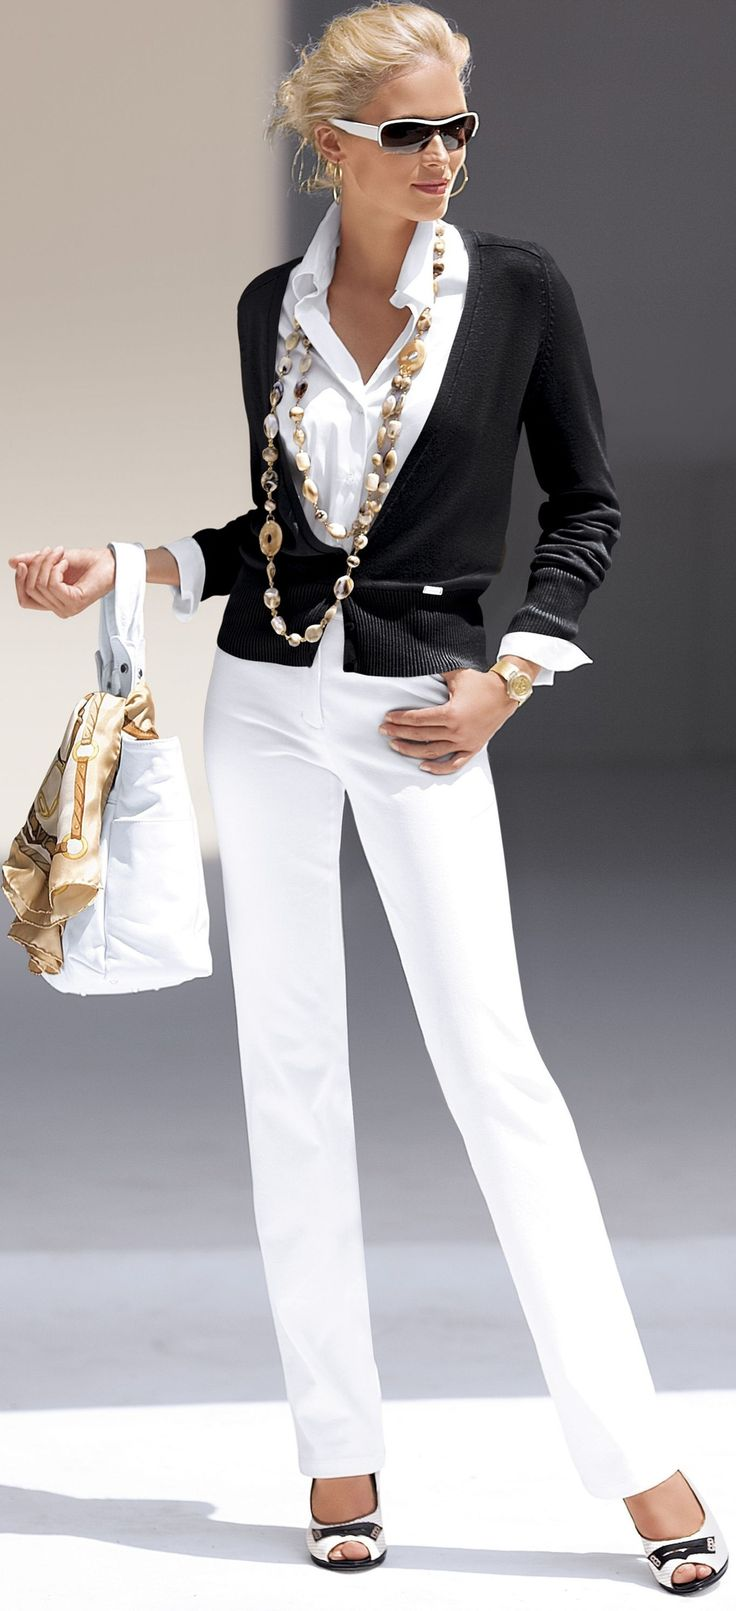 Anna Tokarska for Madeleine collection  I would never wear white pants, but this look is stunning.